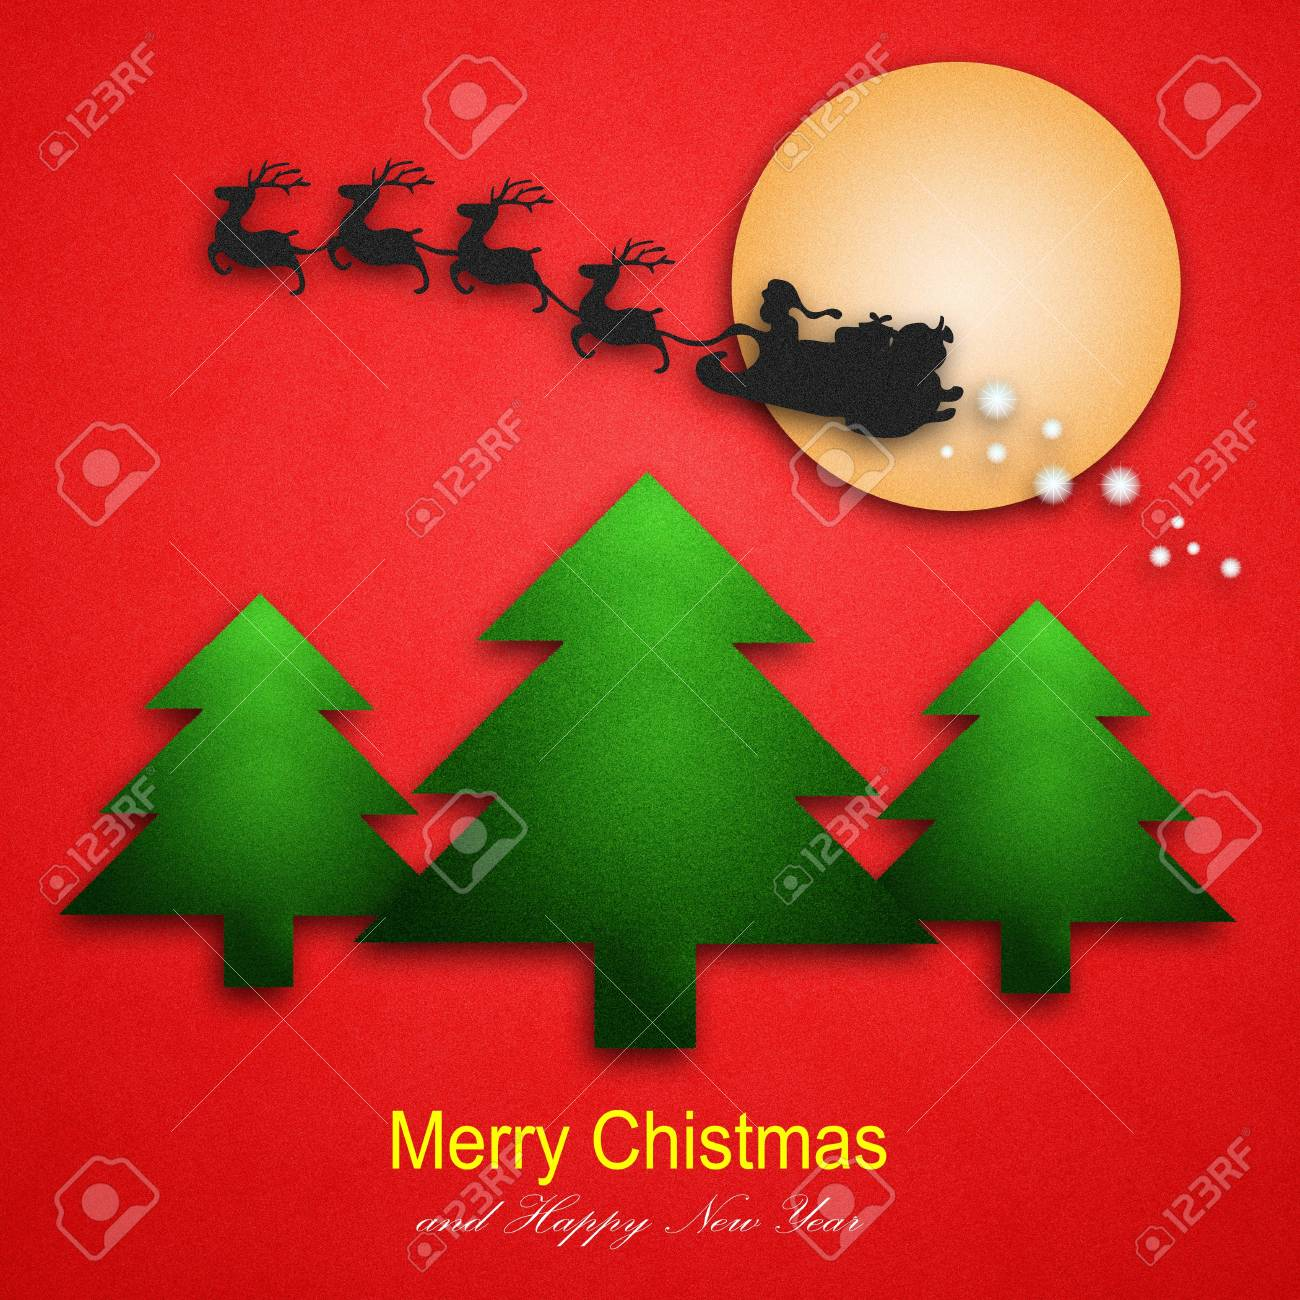 Colorful christmas images into greeting cards for new year stock colorful christmas images into greeting cards for new year stock photo 11800505 m4hsunfo